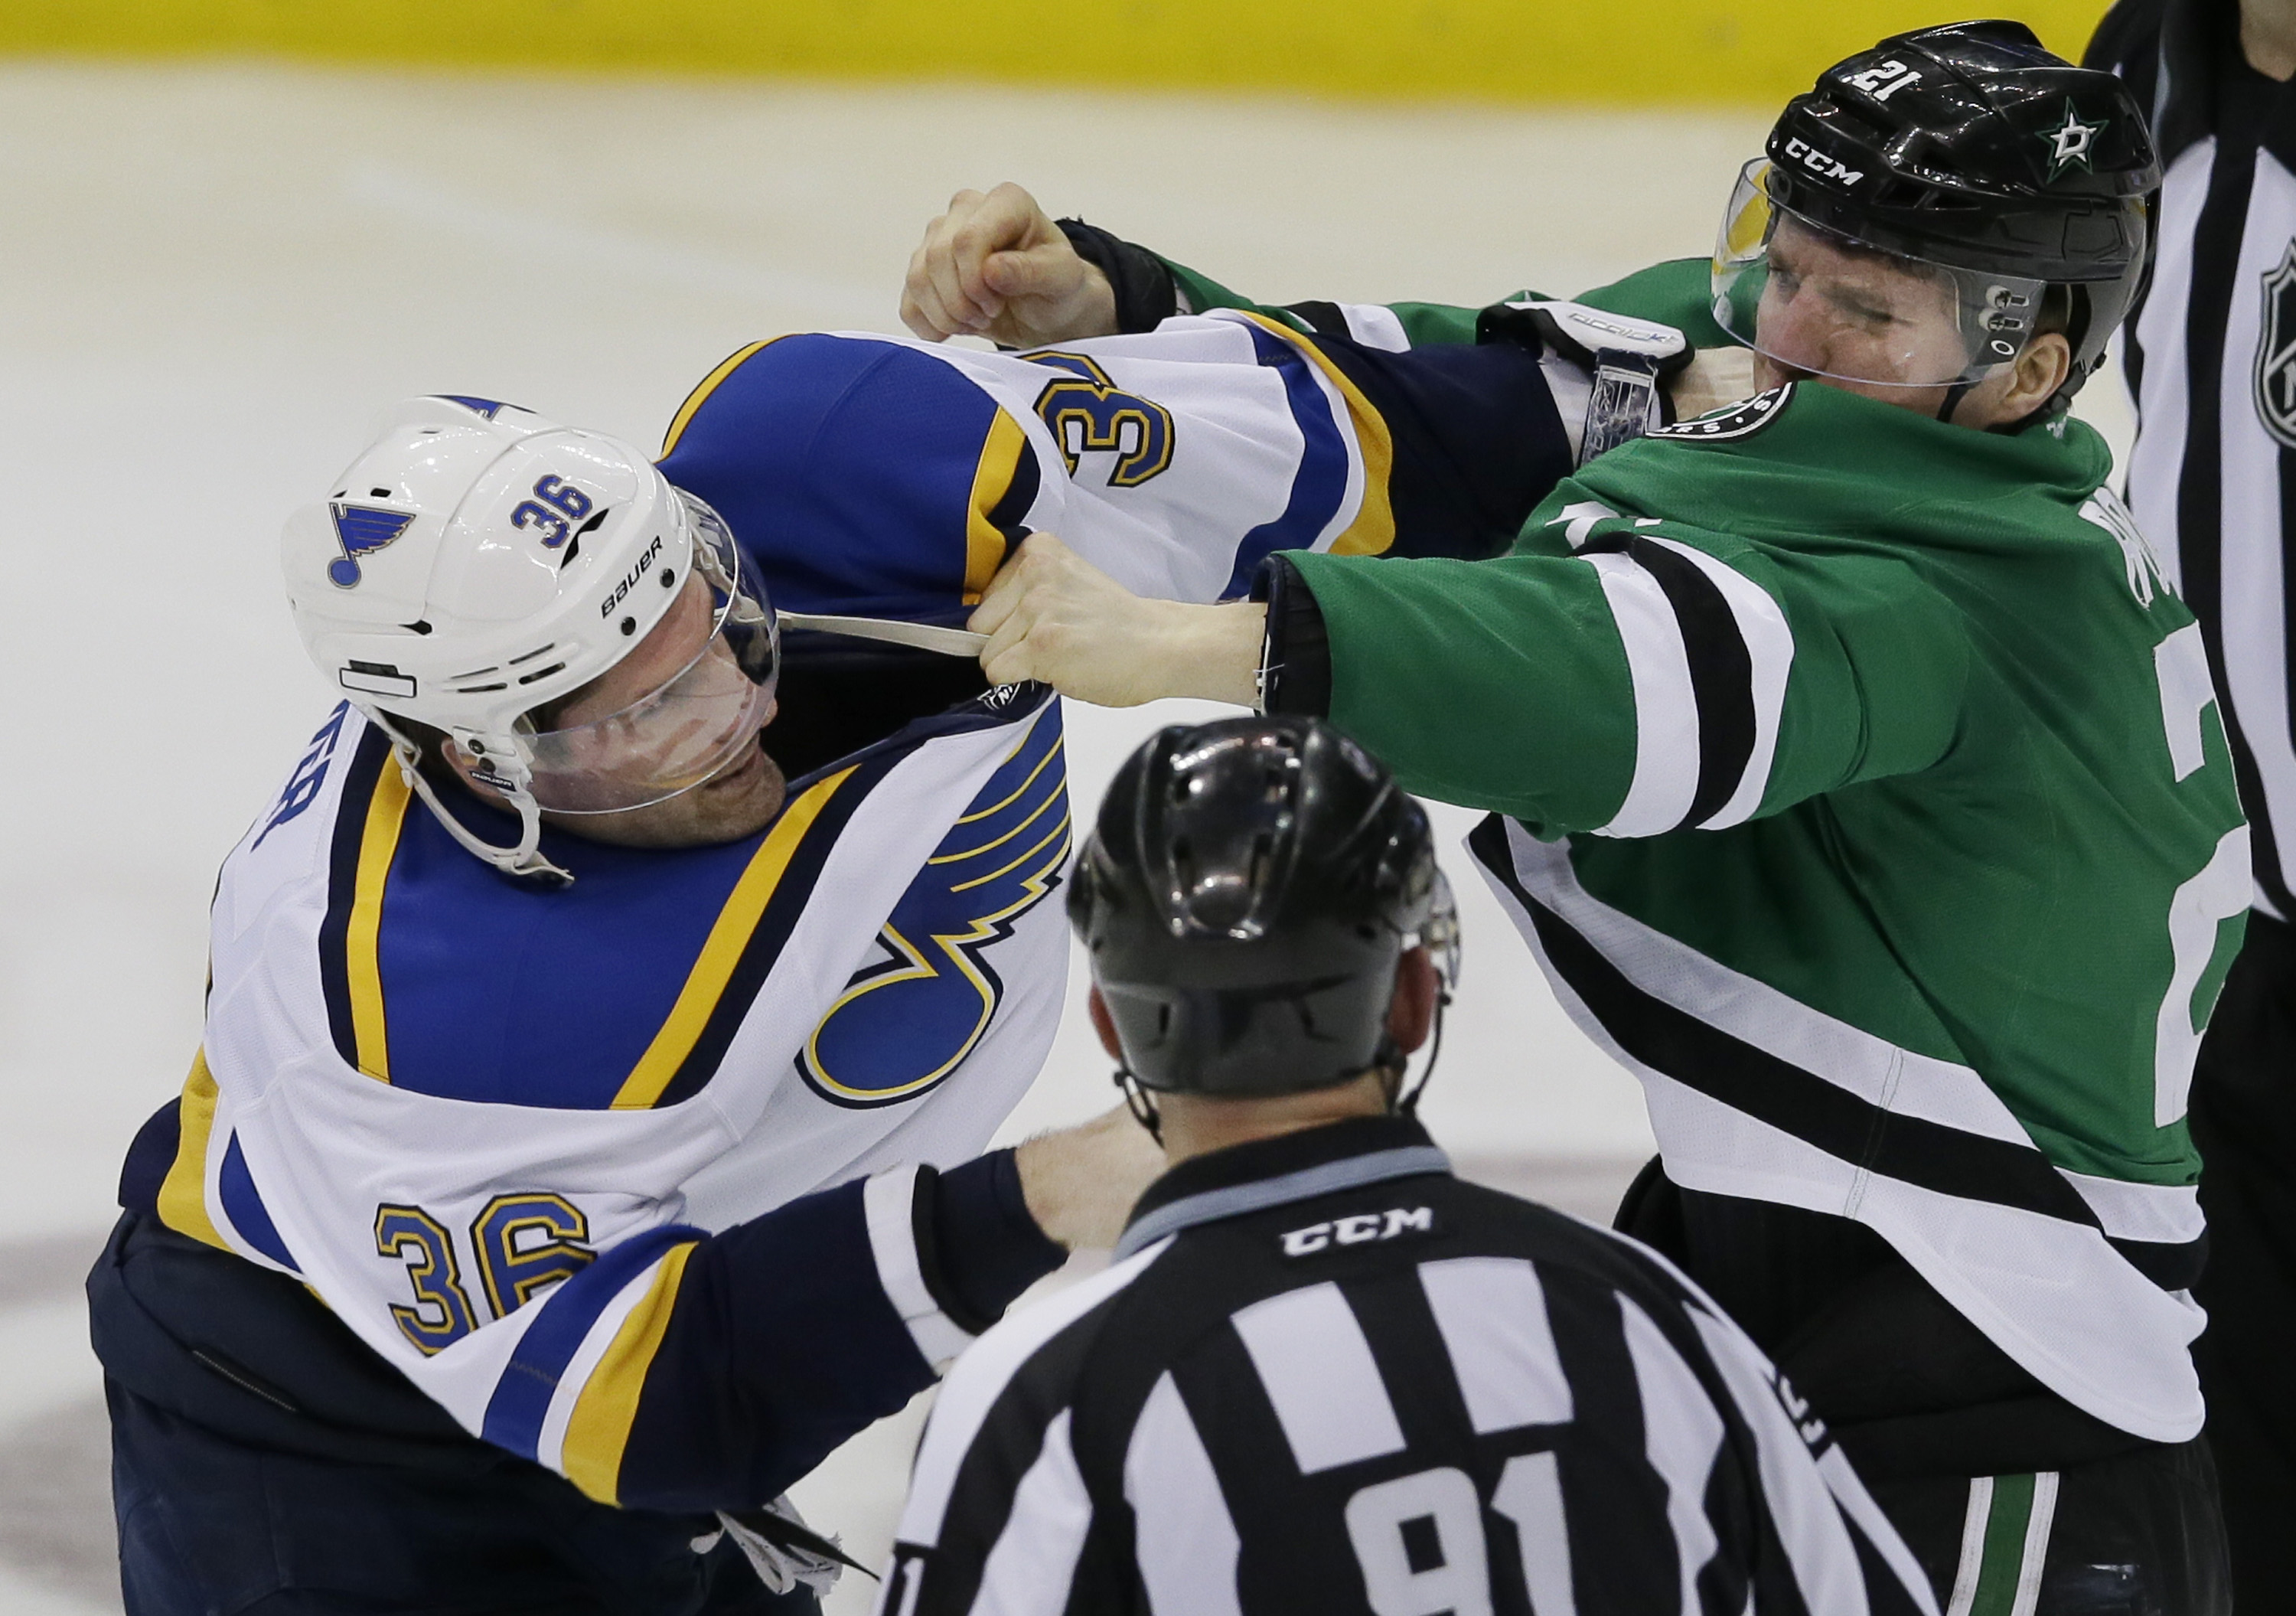 St. Louis Blues right wing Troy Brouwer (36) and Dallas Stars left wing Antoine Roussel (21) fight during the second period of an NHL hockey game Sunday, Dec. 27, 2015, in Dallas. (AP Photo/LM Otero)